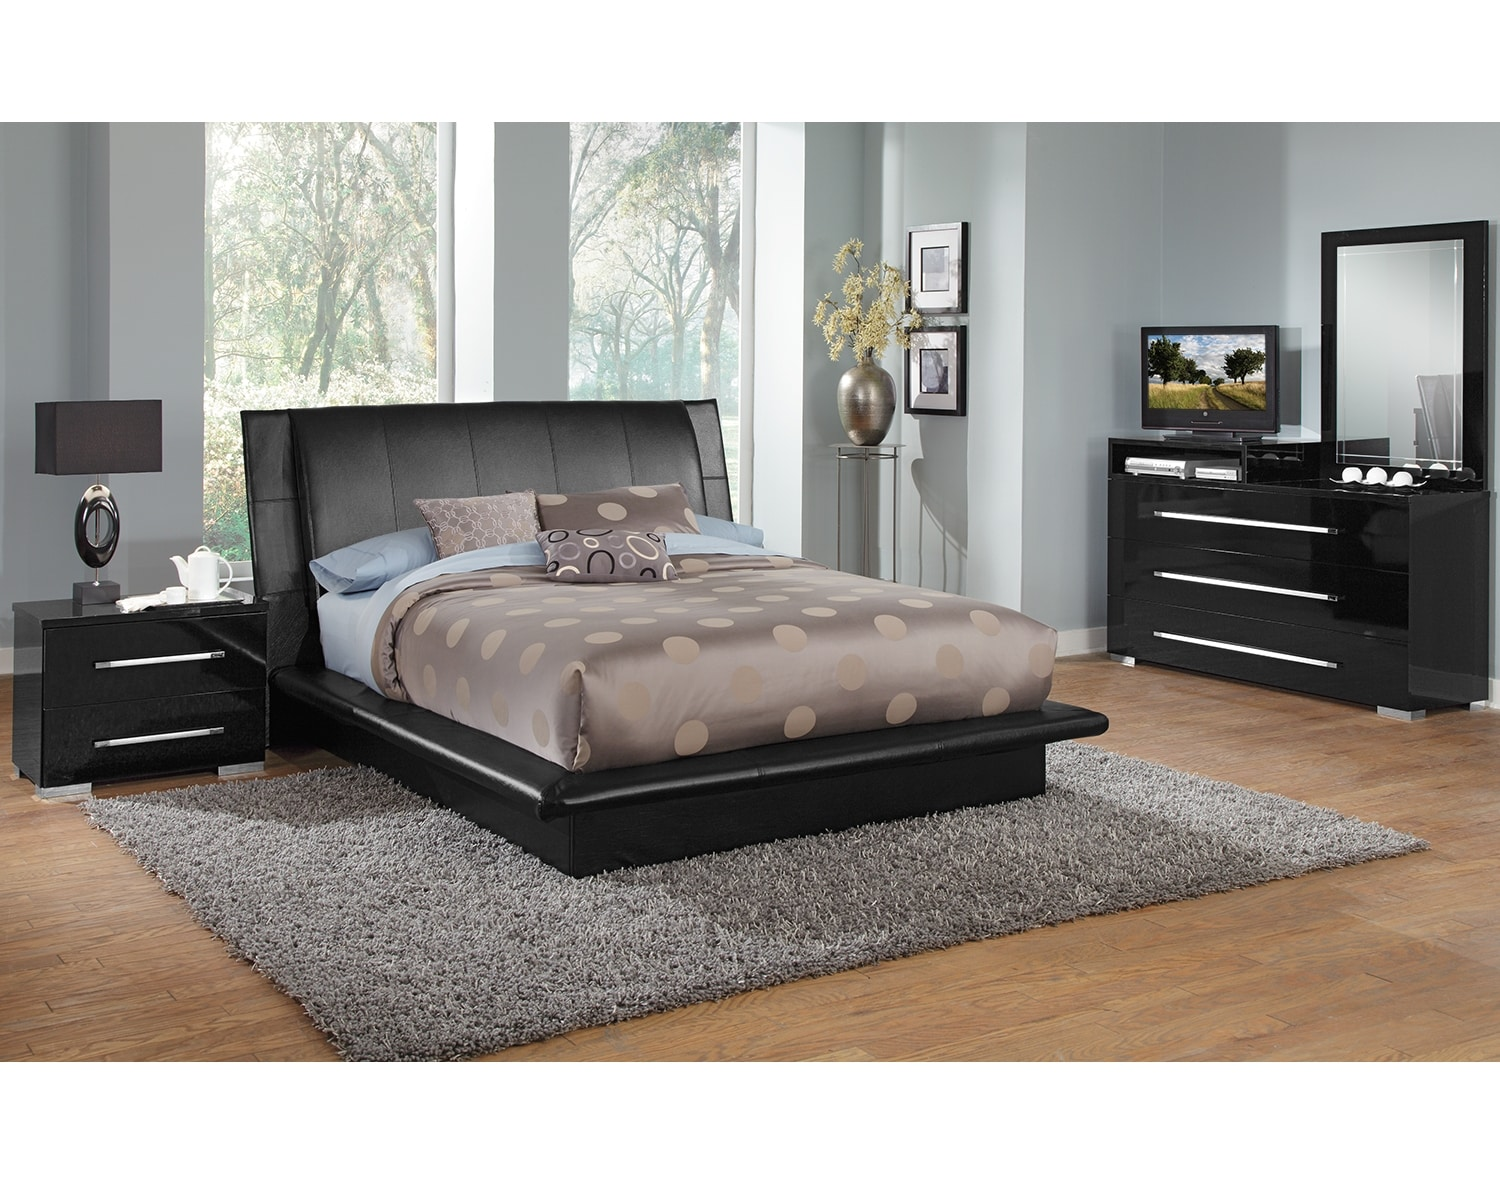 city sale toronto set furniture value dimora bed sets king beds bedroom